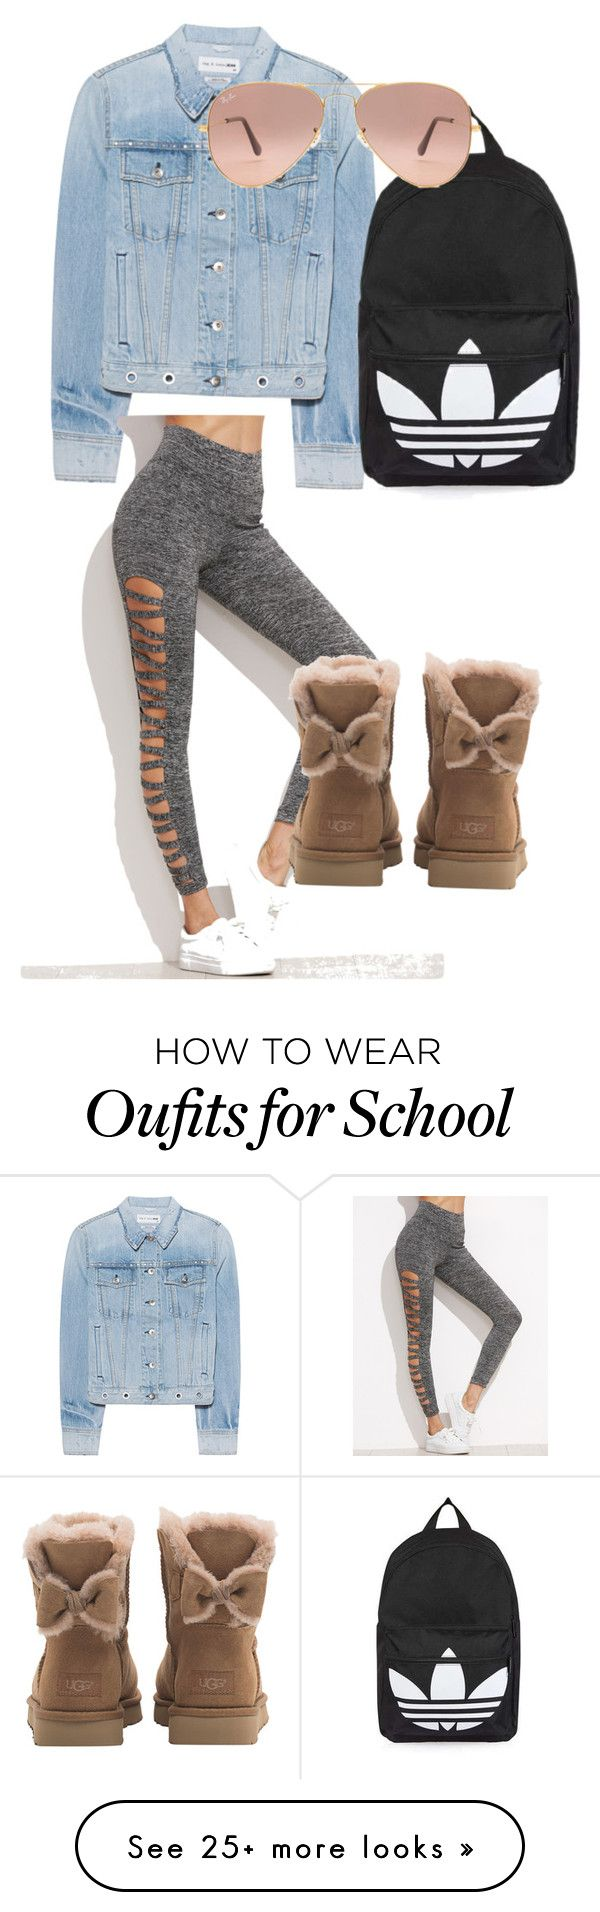 """School Day"" by libmil on Polyvore featuring rag & bone, Topshop, Ray-Ban and UGG"